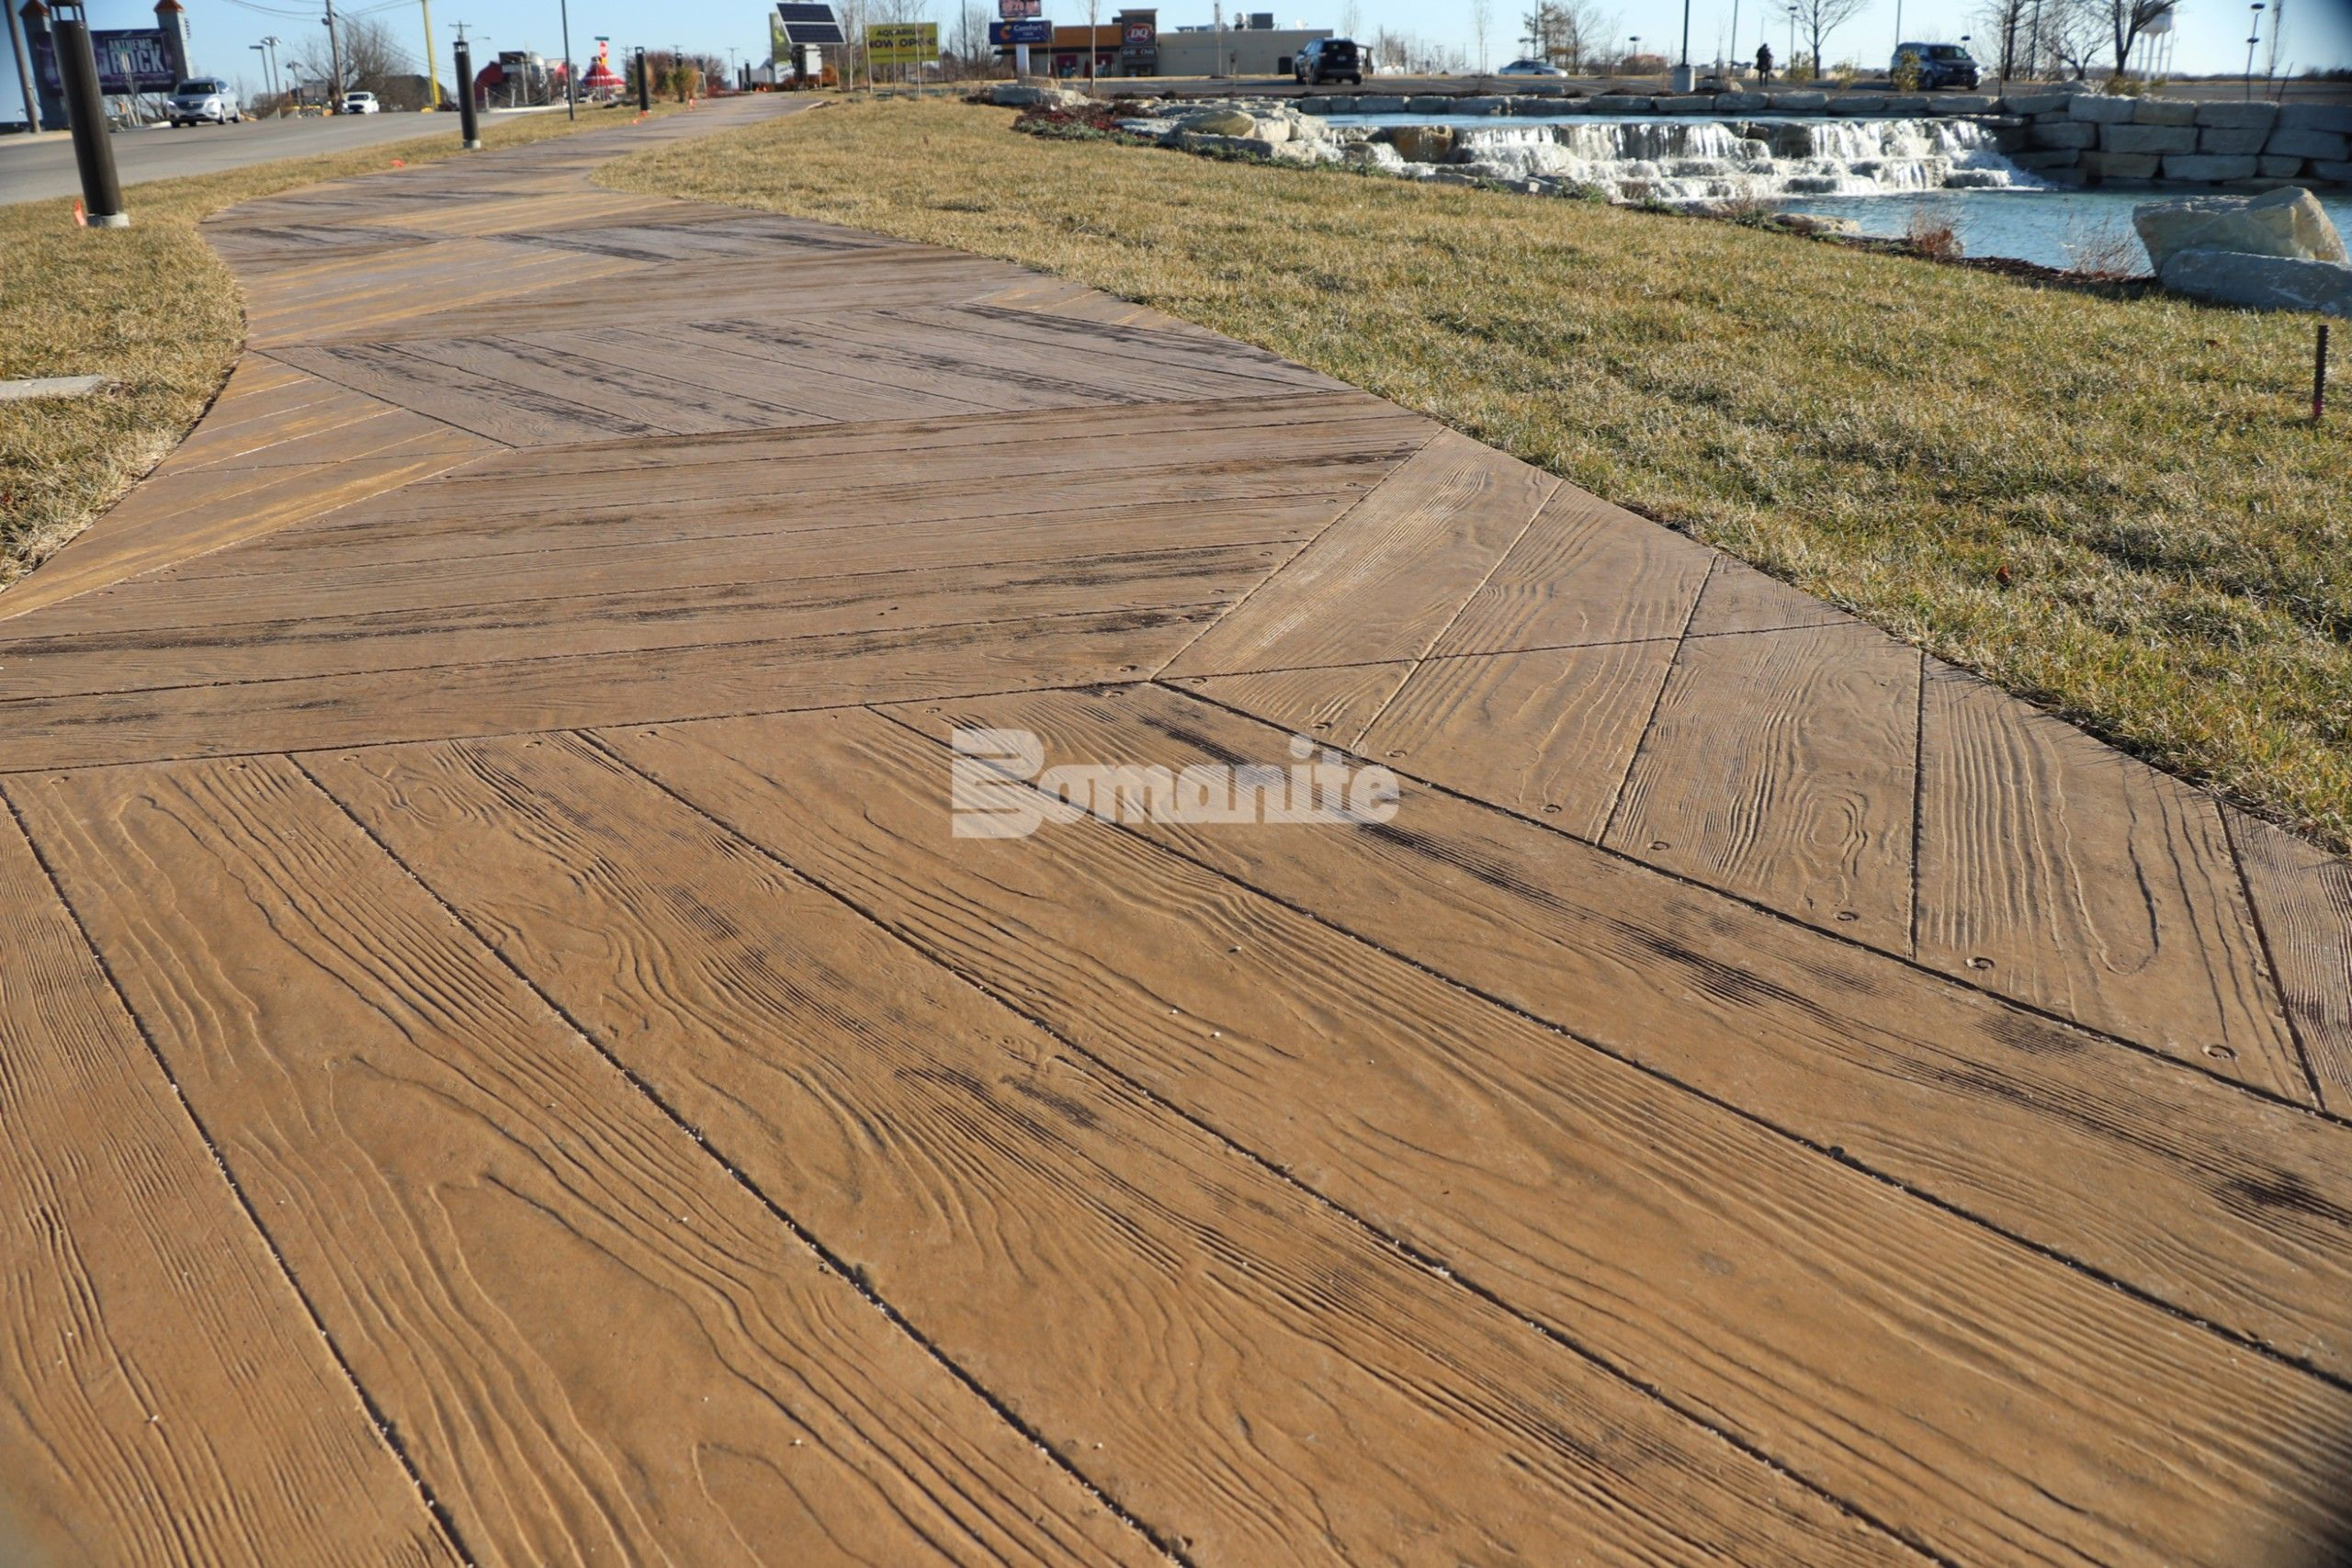 Using the Bomanite Imprint Systems Musselman and Hall Contractors worked with PGAV Destinations in creating a custom Hexagon Boardwalk pattern with Custom Radius Wood Grain Planks that snake around the entrance to the Branson Boardwalk Aquarium.